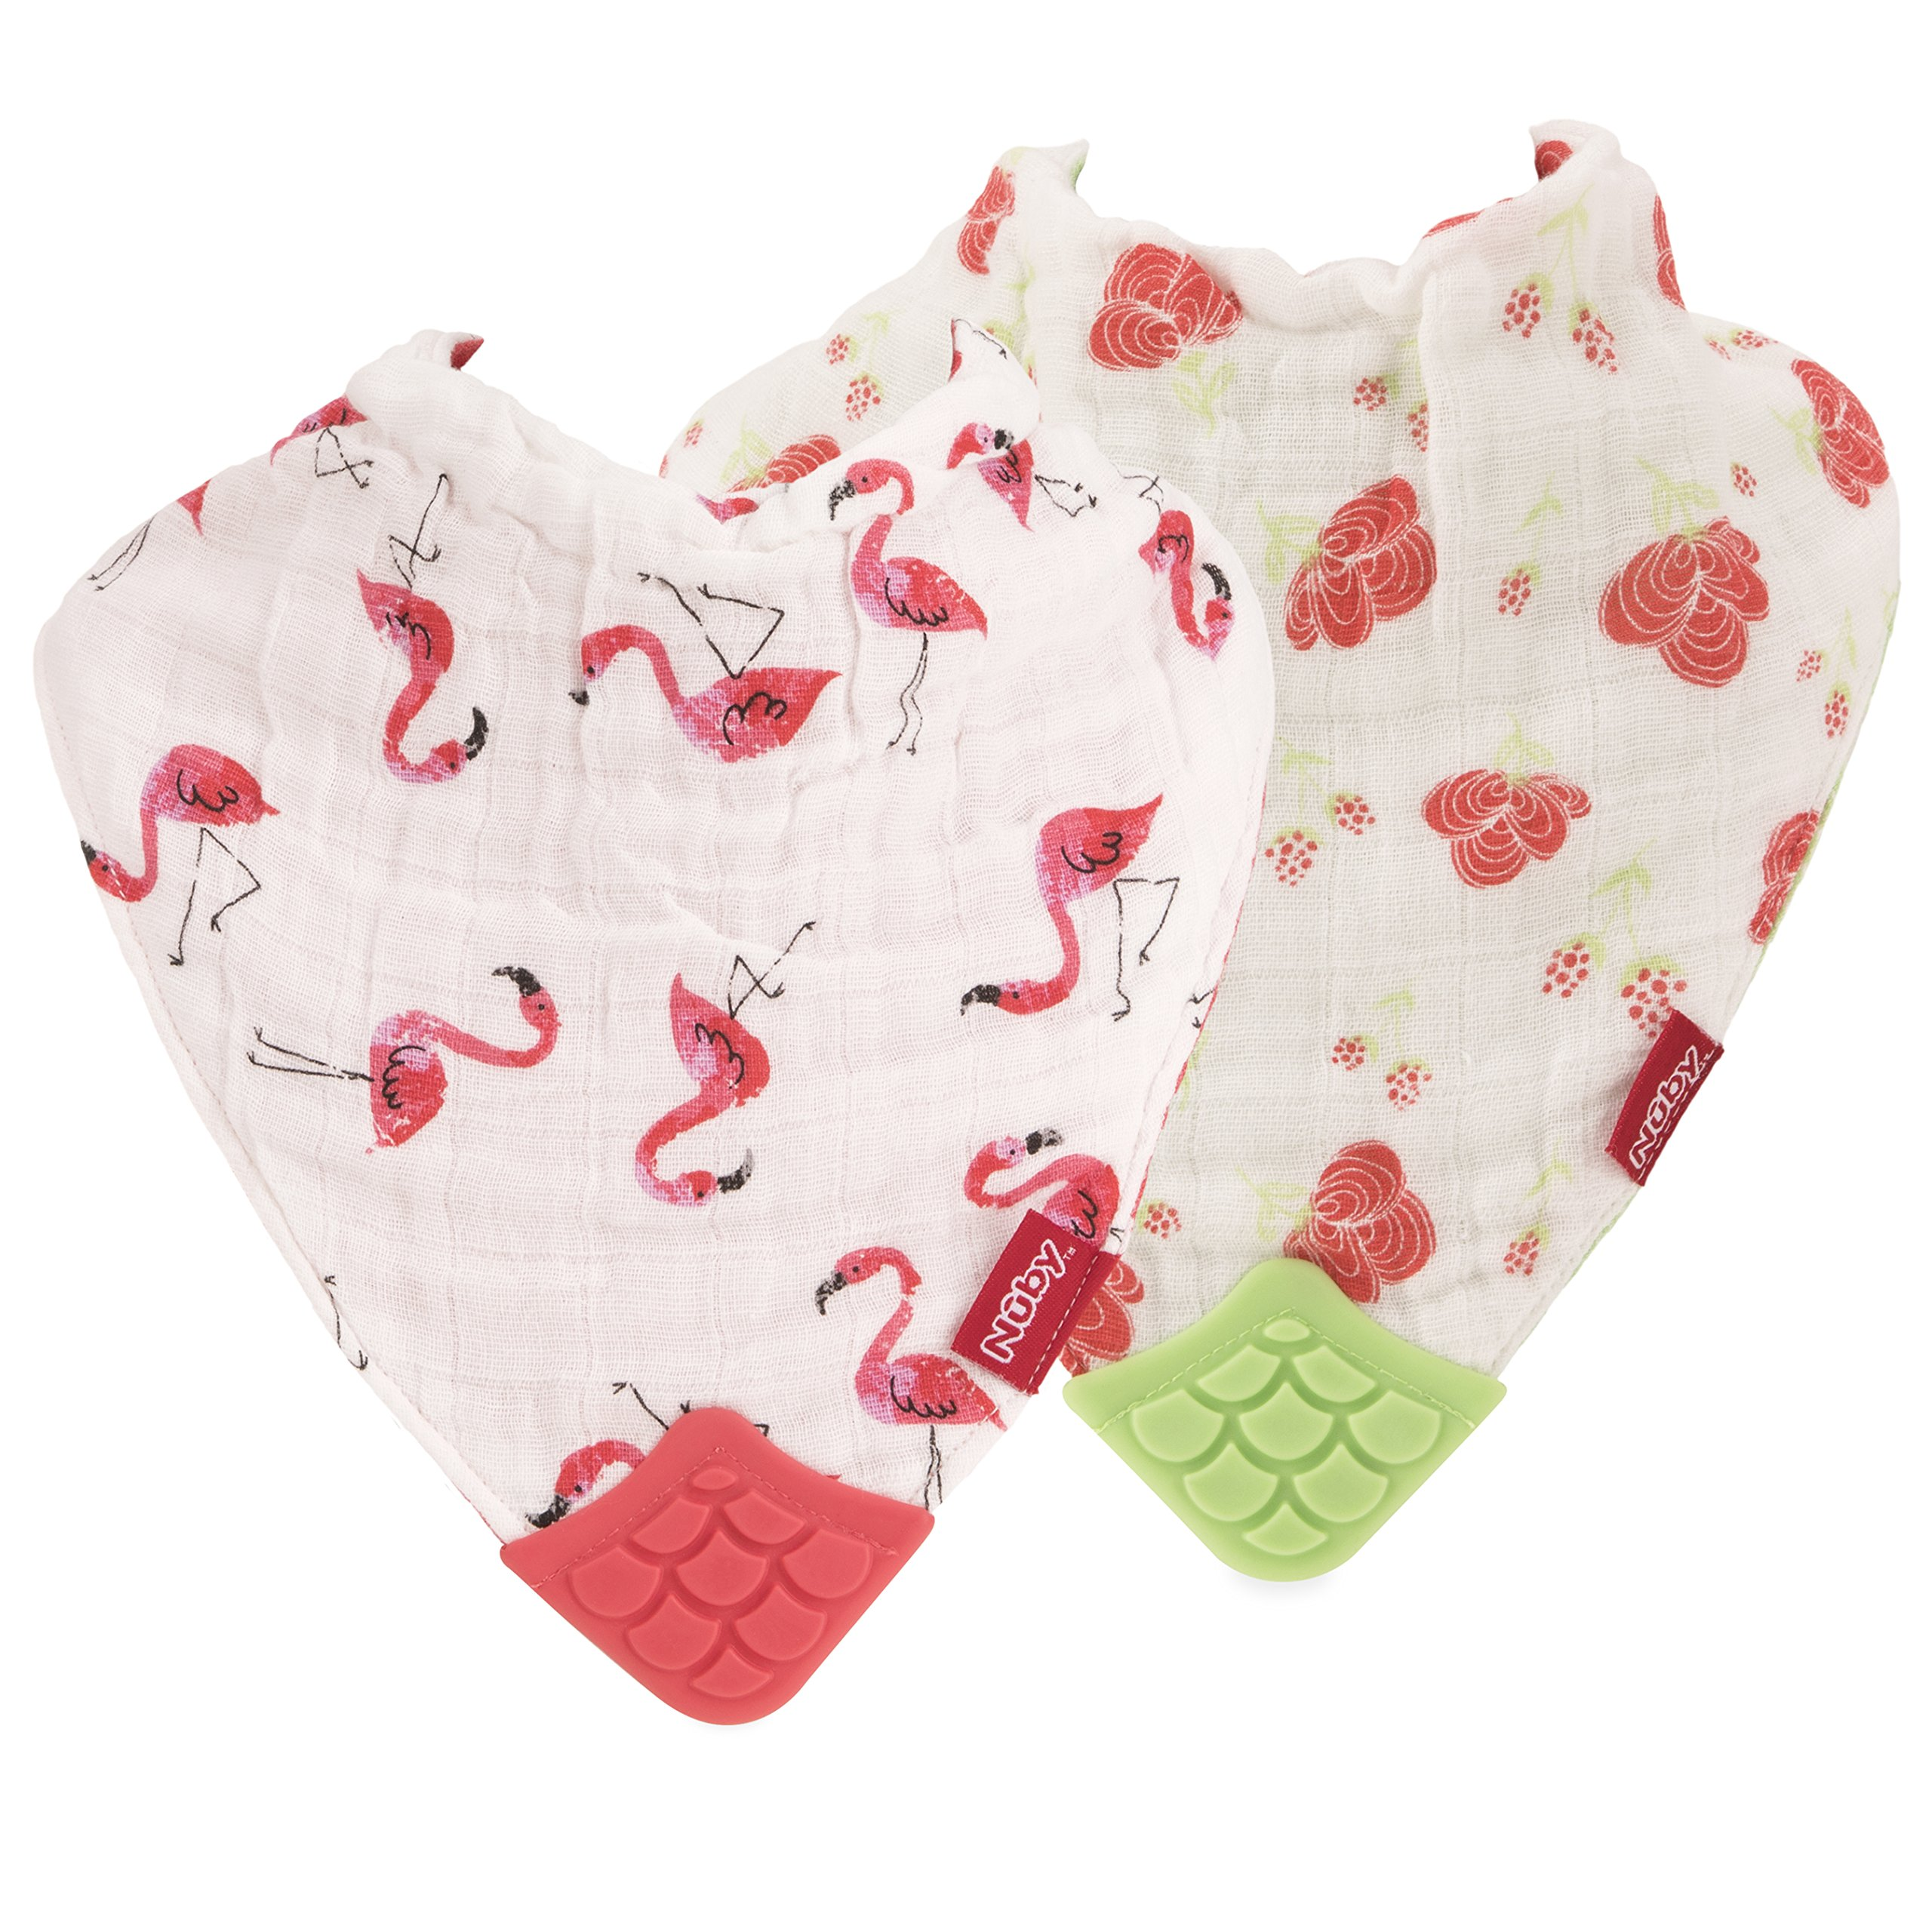 Nuby Reversible Natural Teething Flamingo